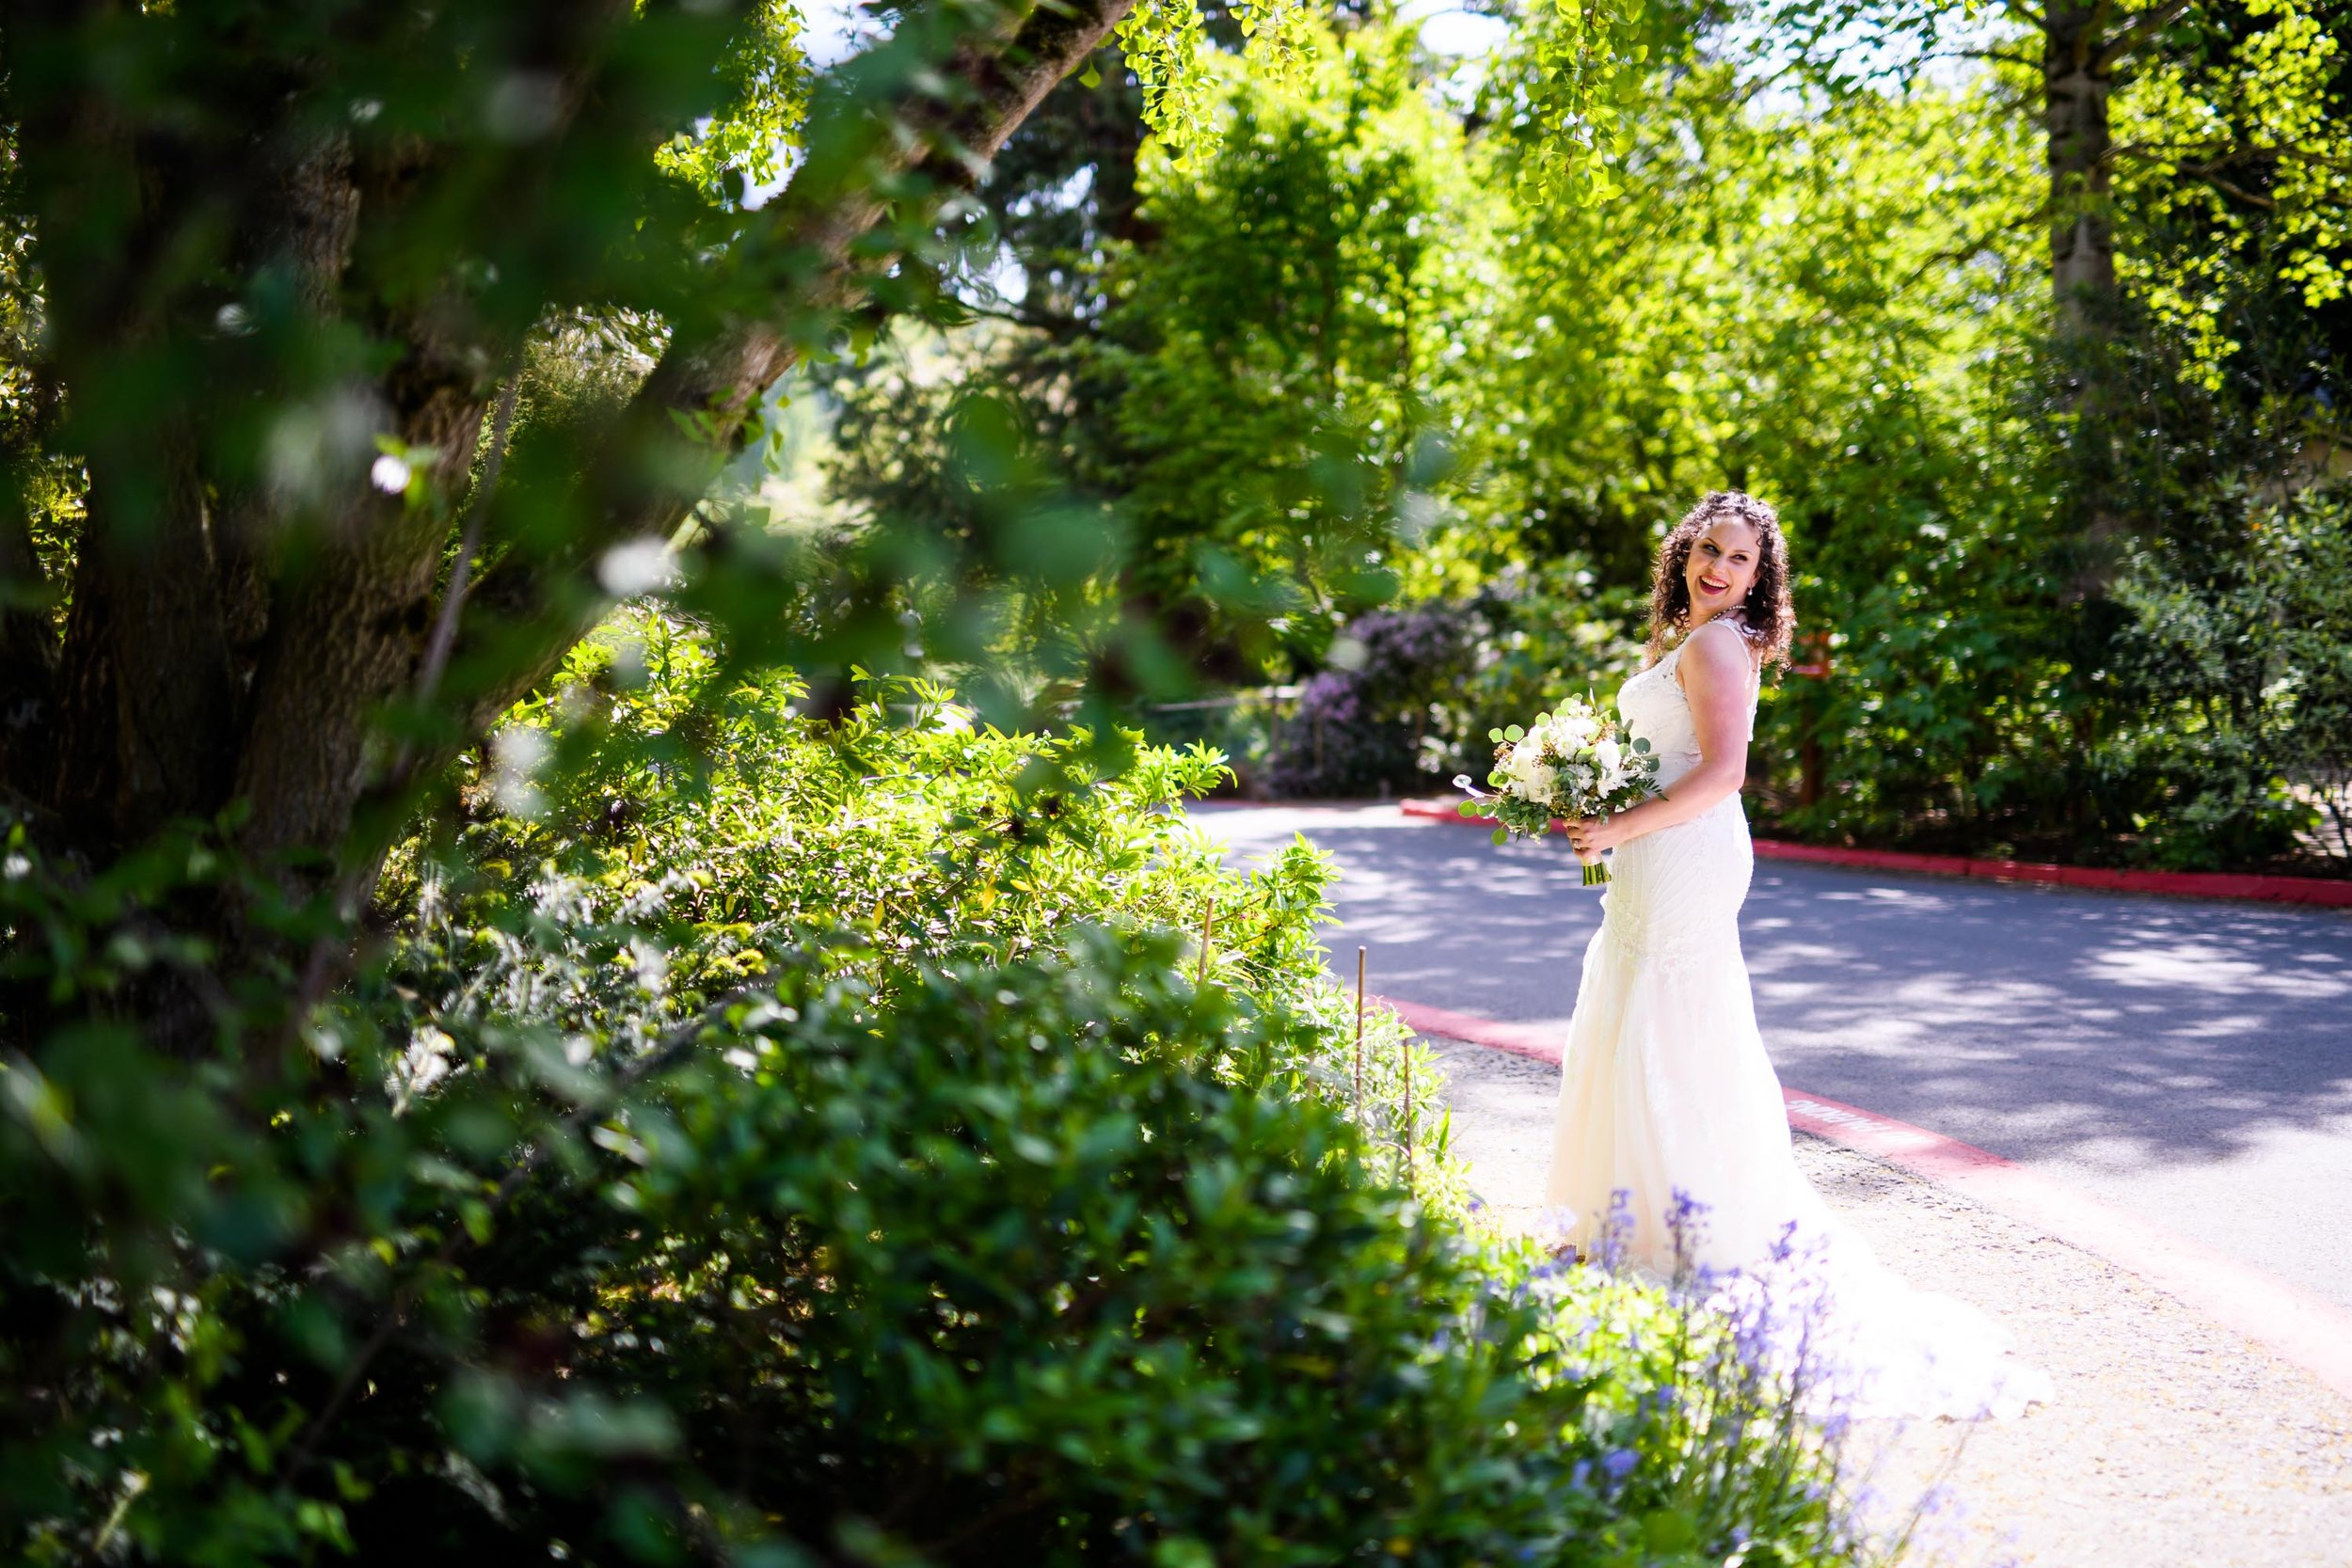 edgefield wedding photos44.jpg